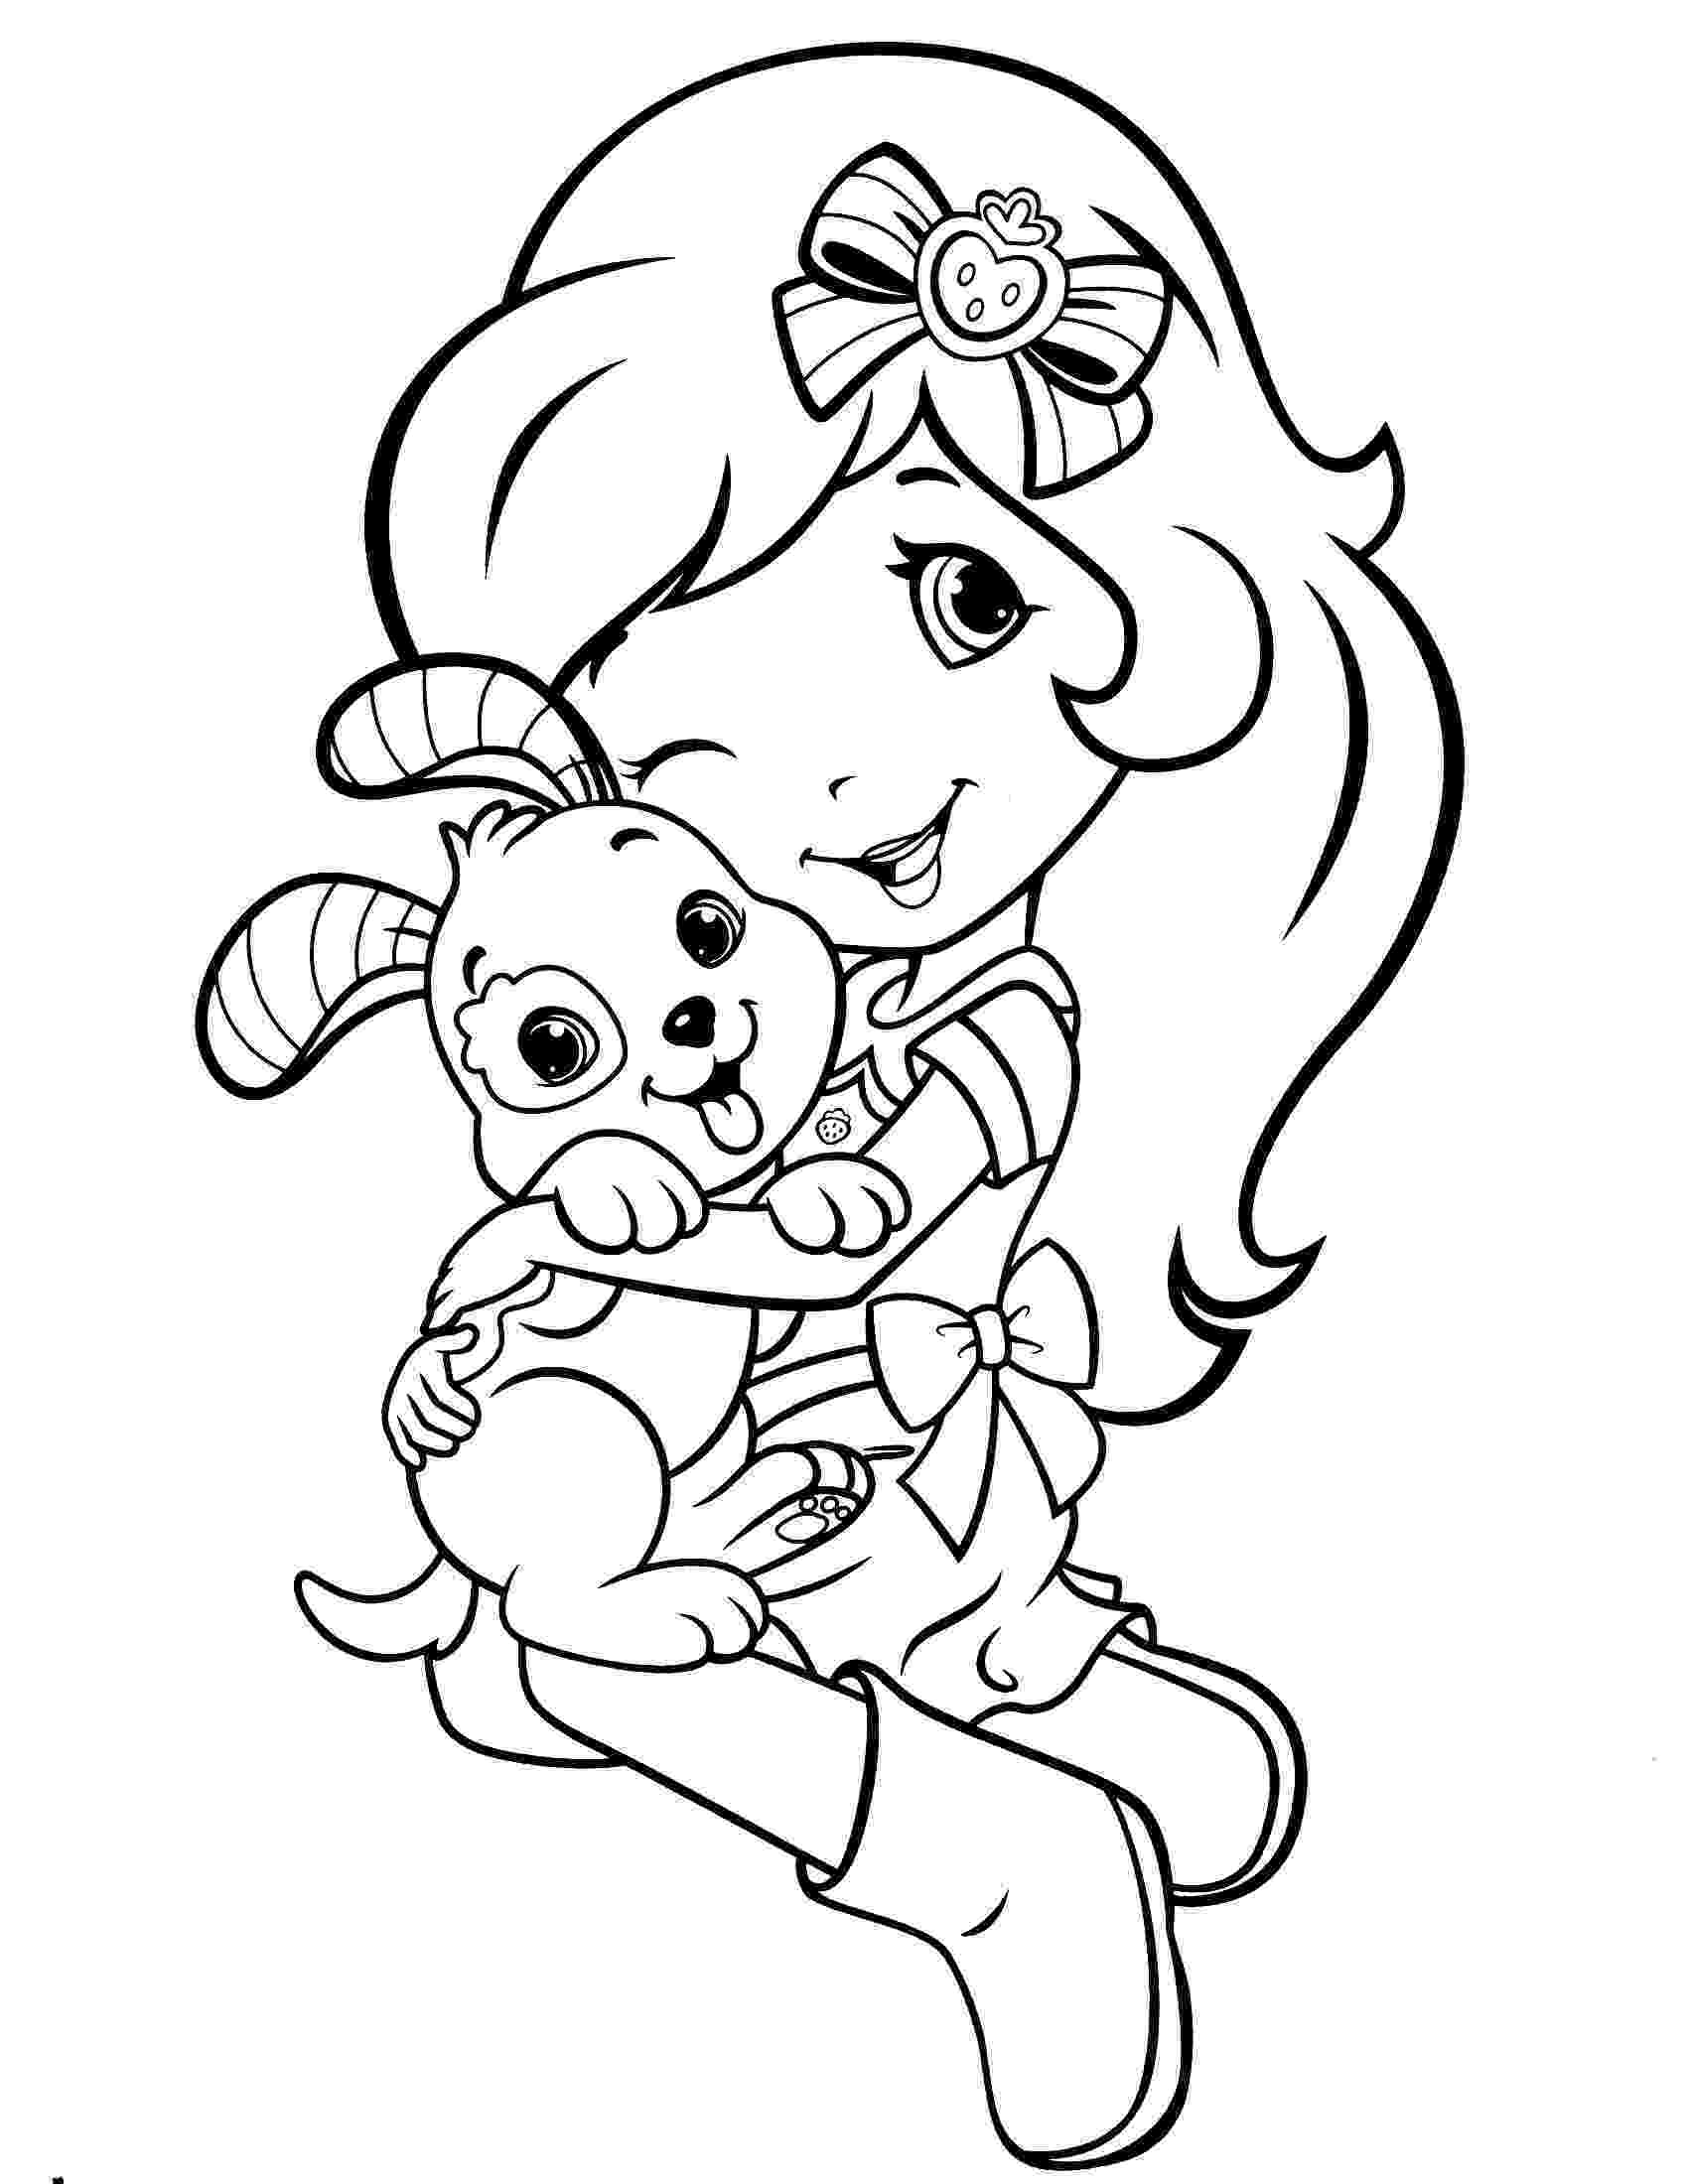 cool coloring pages printable coloring pages cool designs coloring pages az coloring pages printable coloring cool